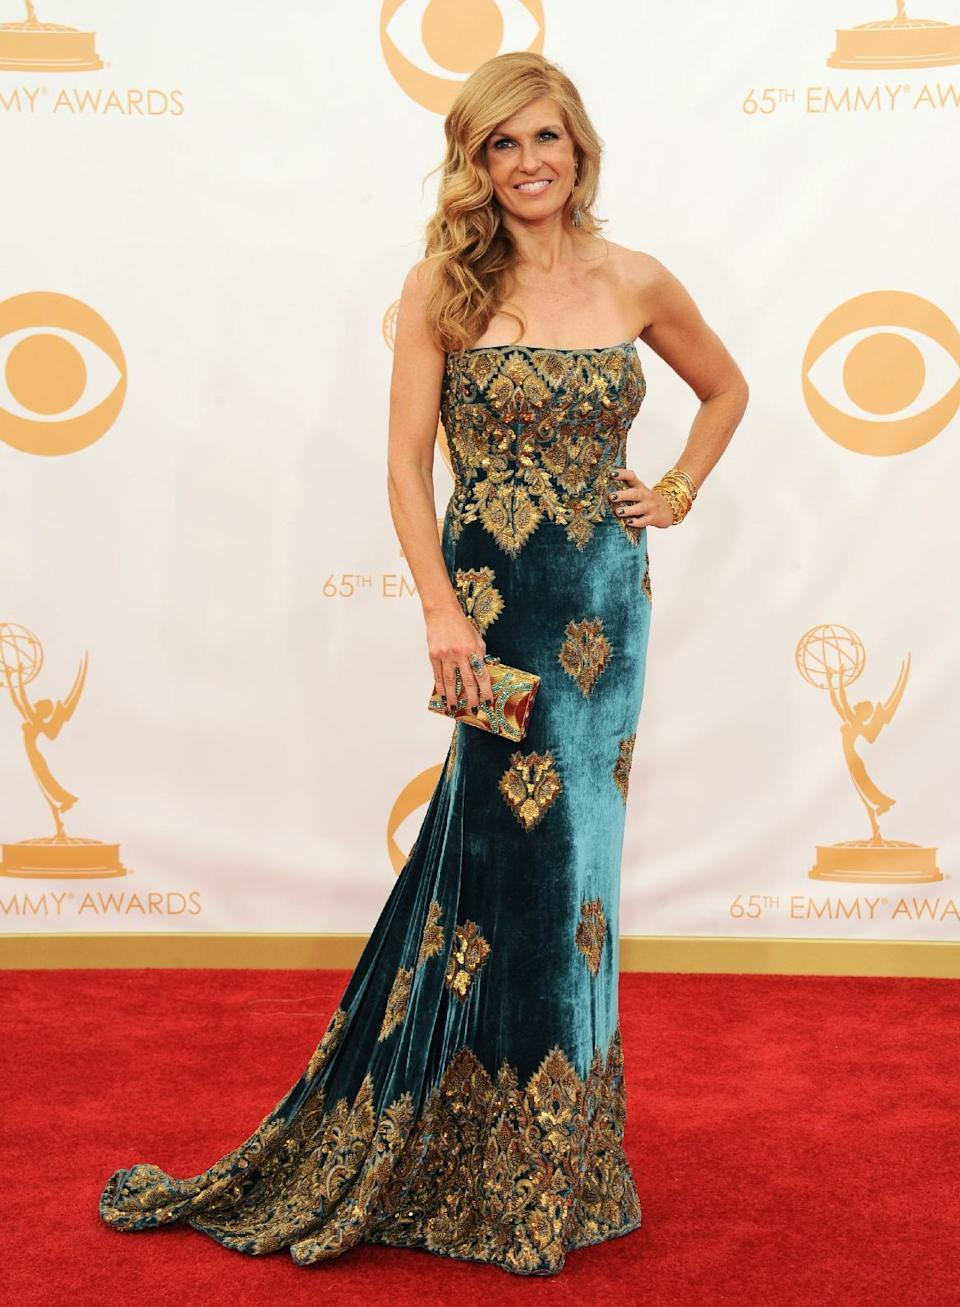 Connie Britton arrives at the 65th Primetime Emmy Awards at Nokia Theatre on Sunday Sept. 22, 2013, in Los Angeles. (Photo by Jordan Strauss/Invision/AP)